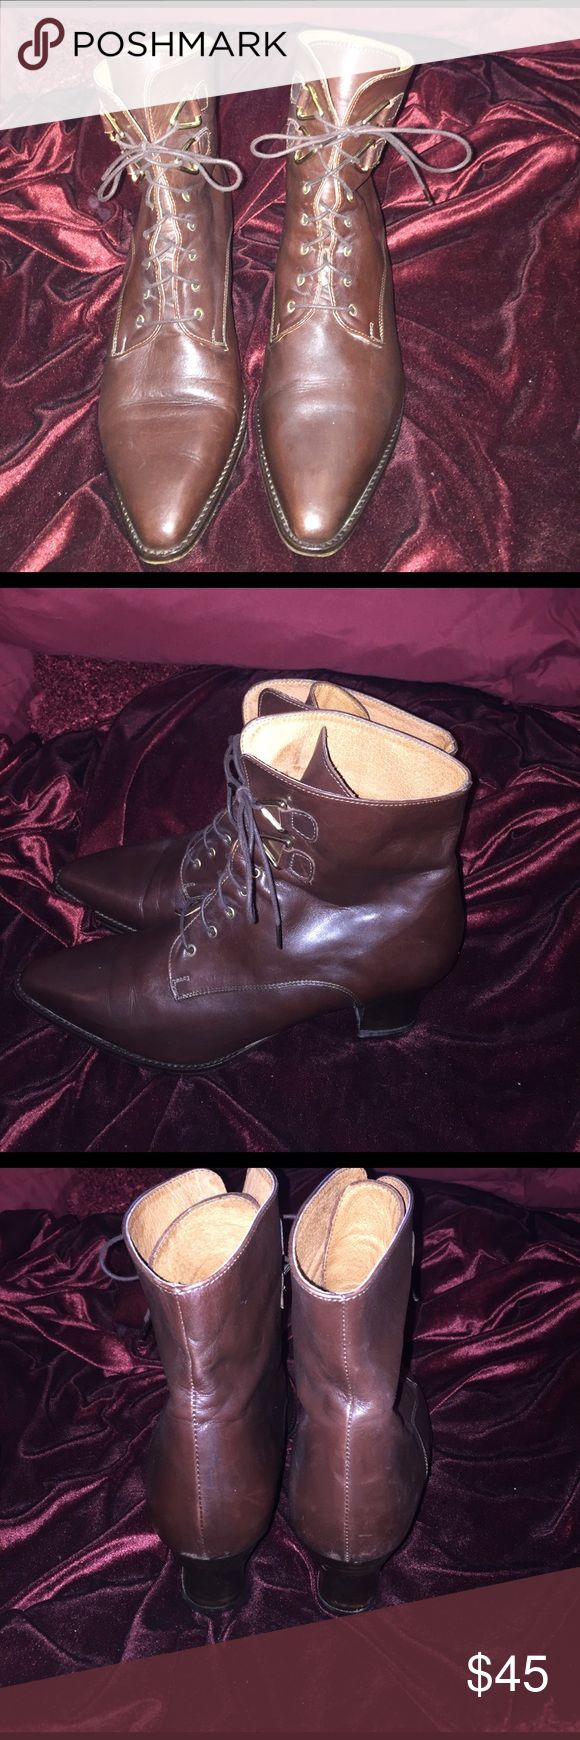 Nordstrom boots Norstrom soft leather brown boots. Nordstrom Shoes Ankle Boots & Booties